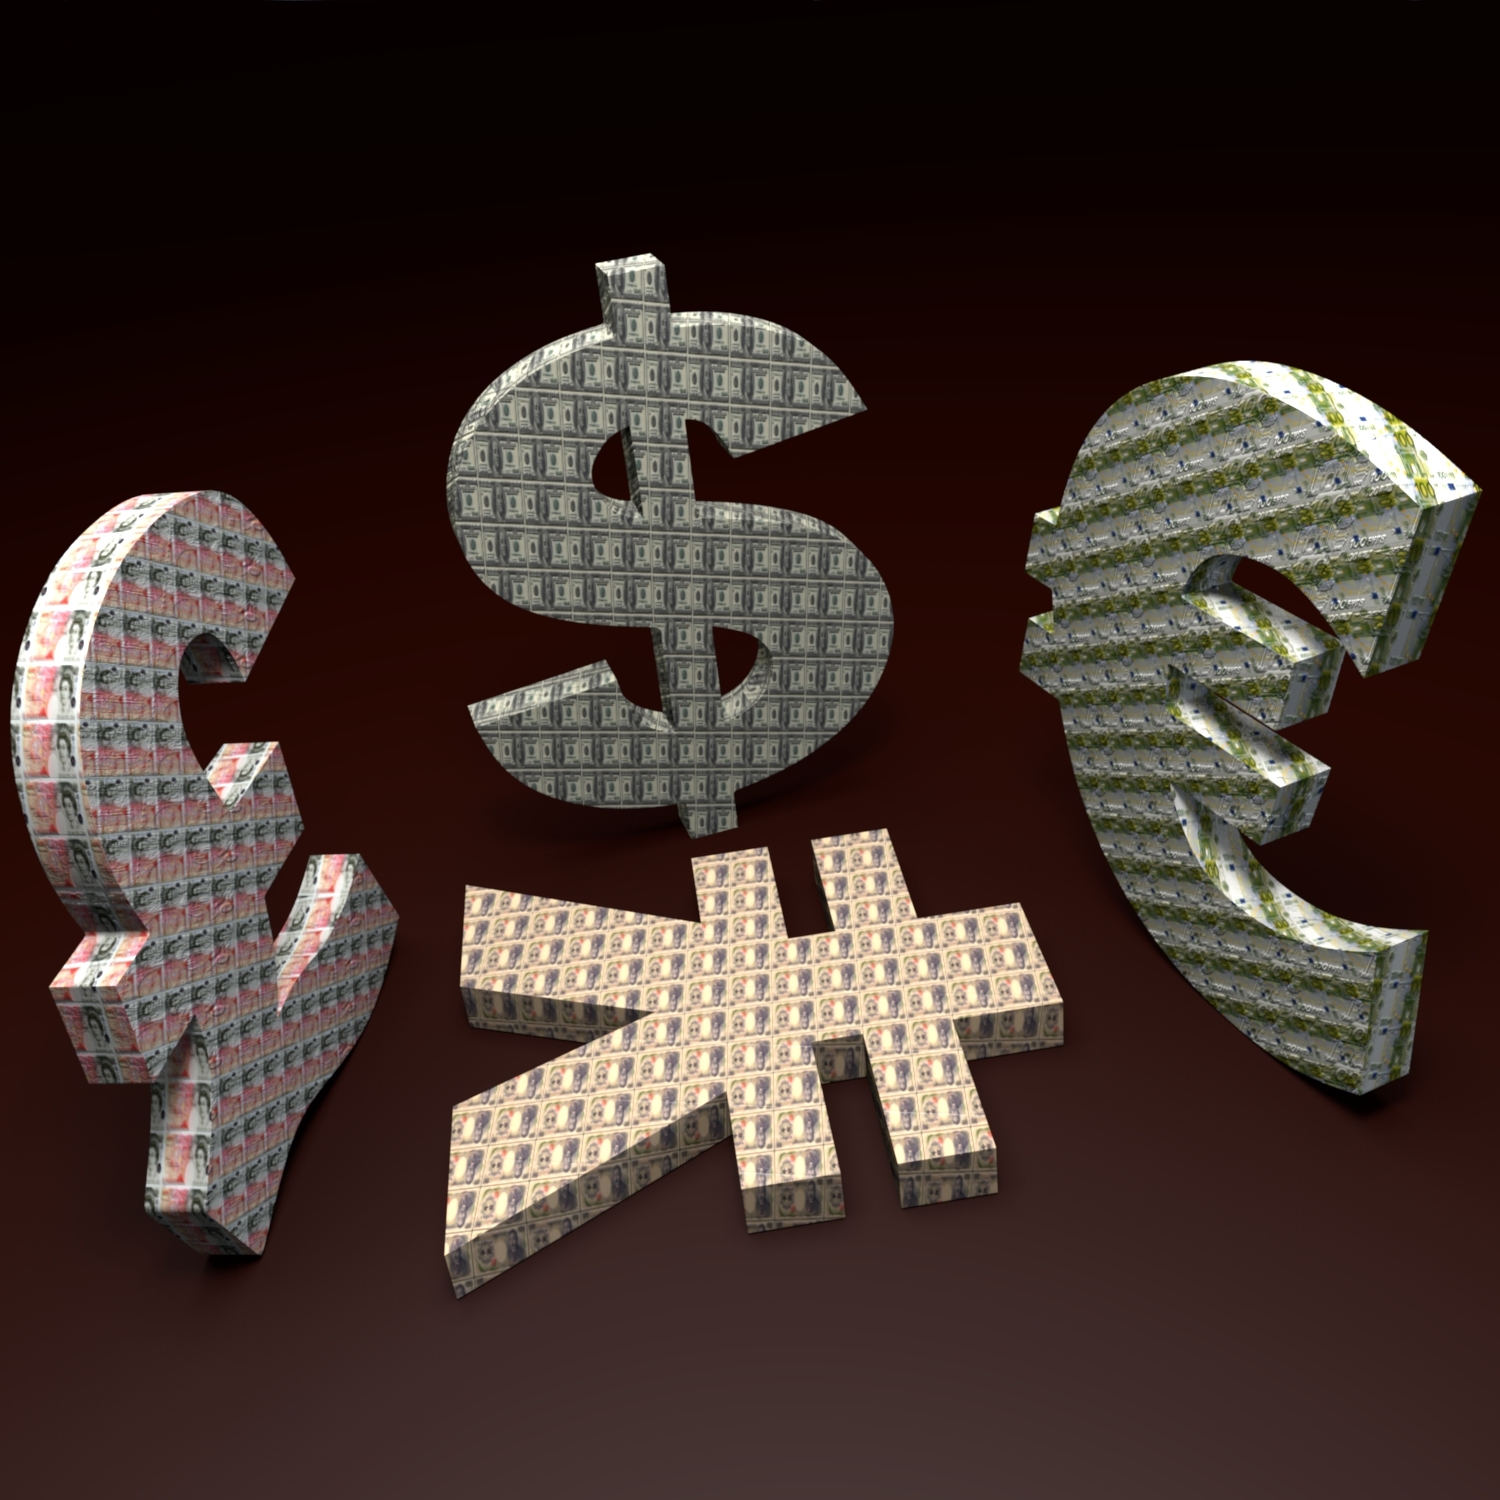 currency simbols 3d model blend obj 116229